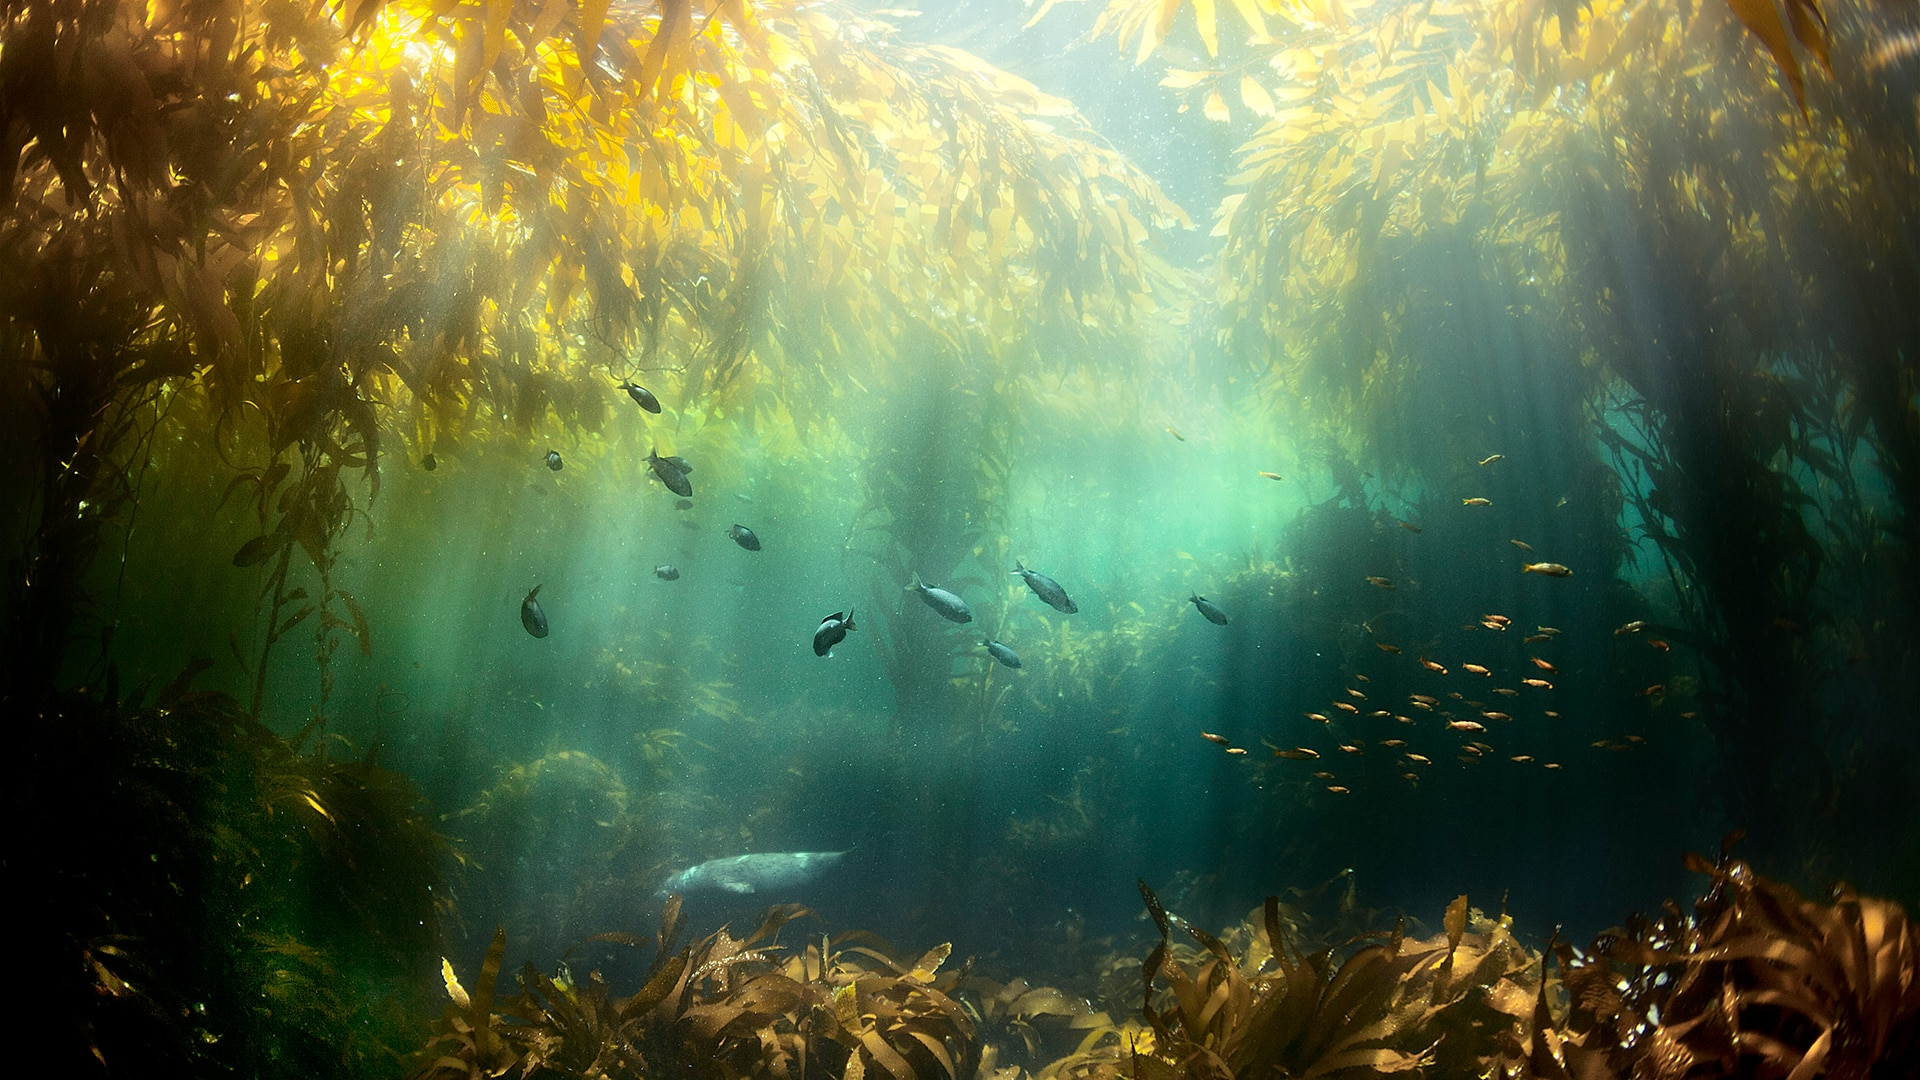 Seagrass and fish species